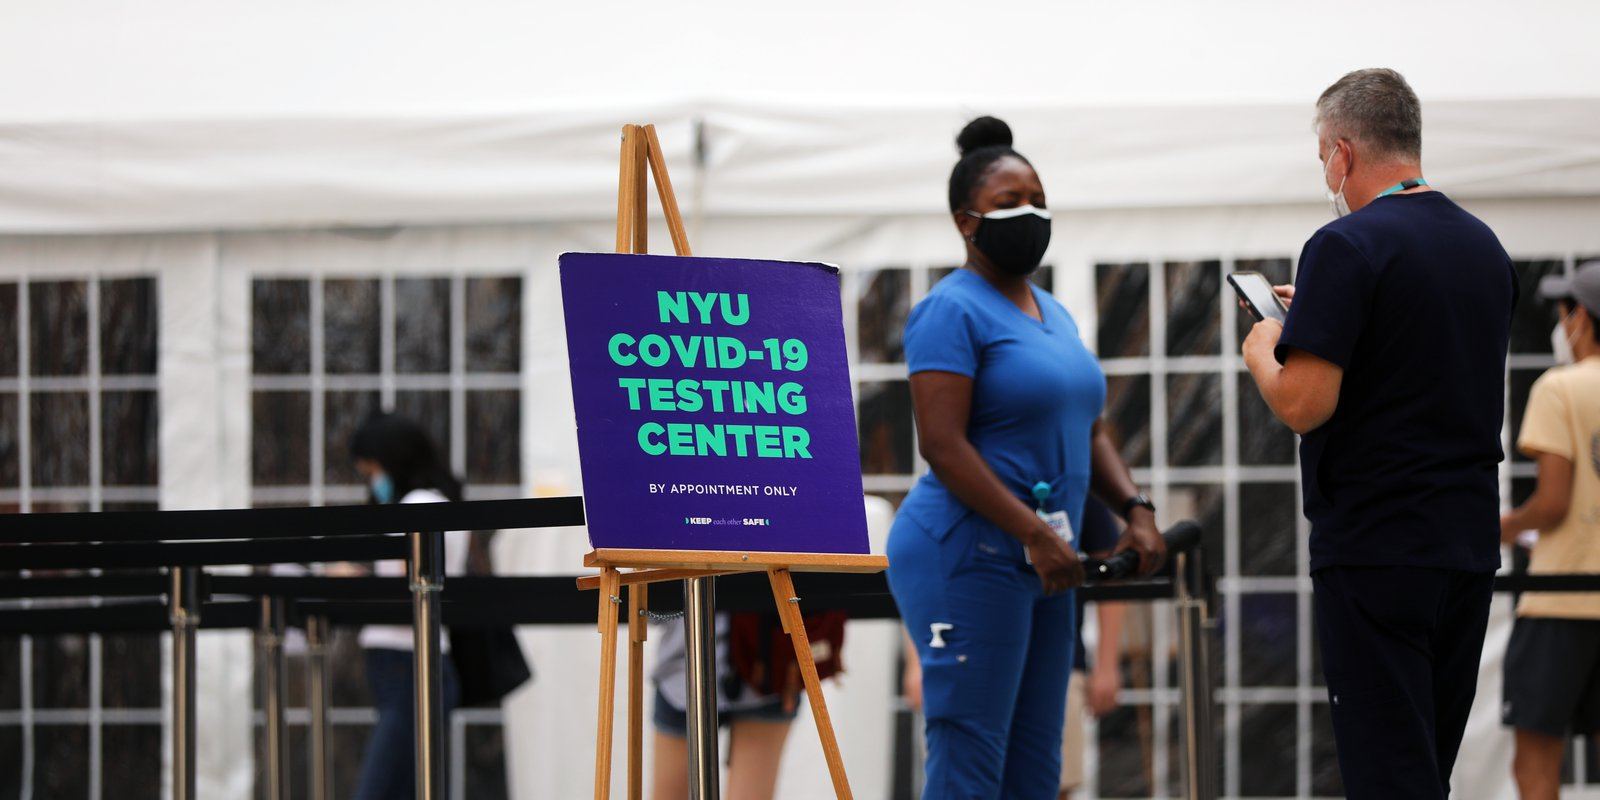 Students at New York University (NYU) take a Covid-19 test outside of its business school on on August 25, 2020 in New York City. (Photo by Spencer Platt/Getty Images)